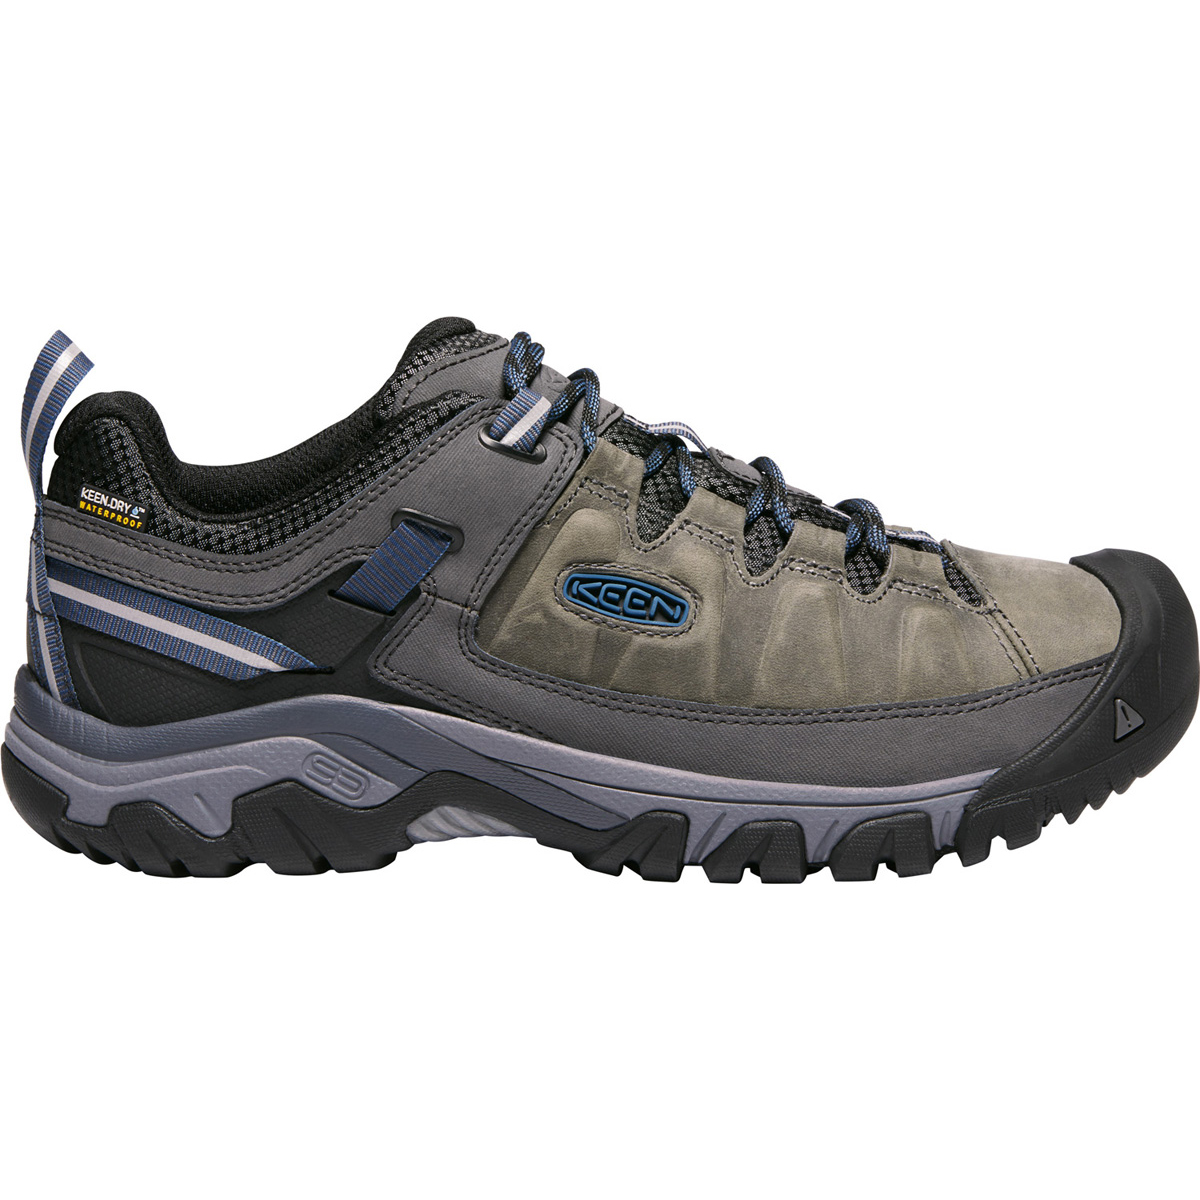 Keen Men's Targhee Iii Waterproof Low Hiking Shoes - Black, 14